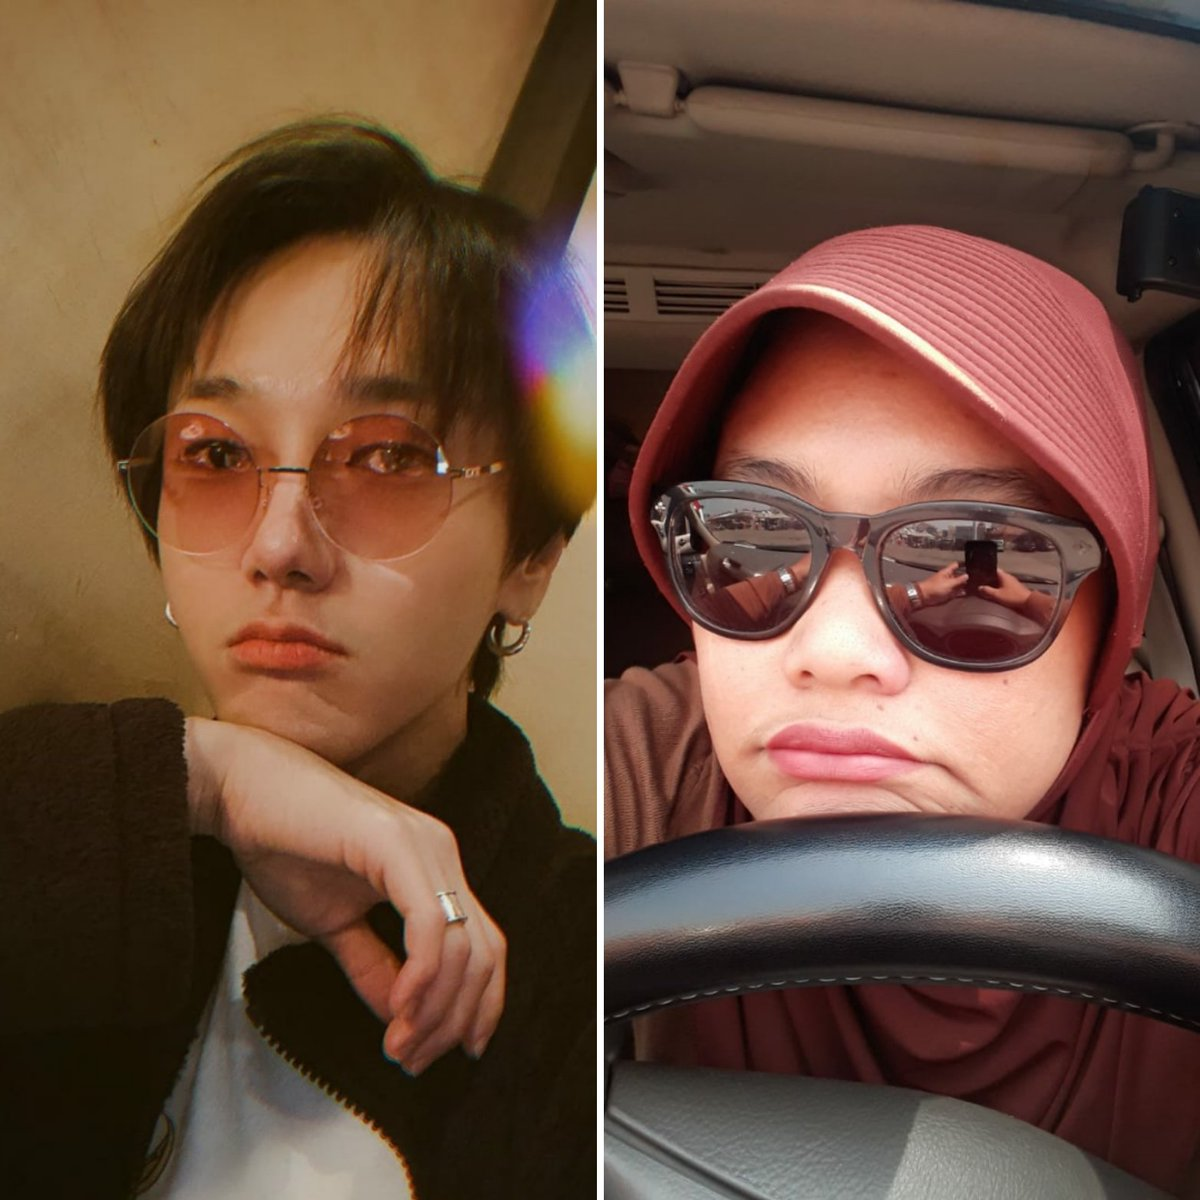 Ok, hes more cuter than me 😅 #elfselcaday #SuperJunior @SJofficial https://t.co/IC9ny08O9T